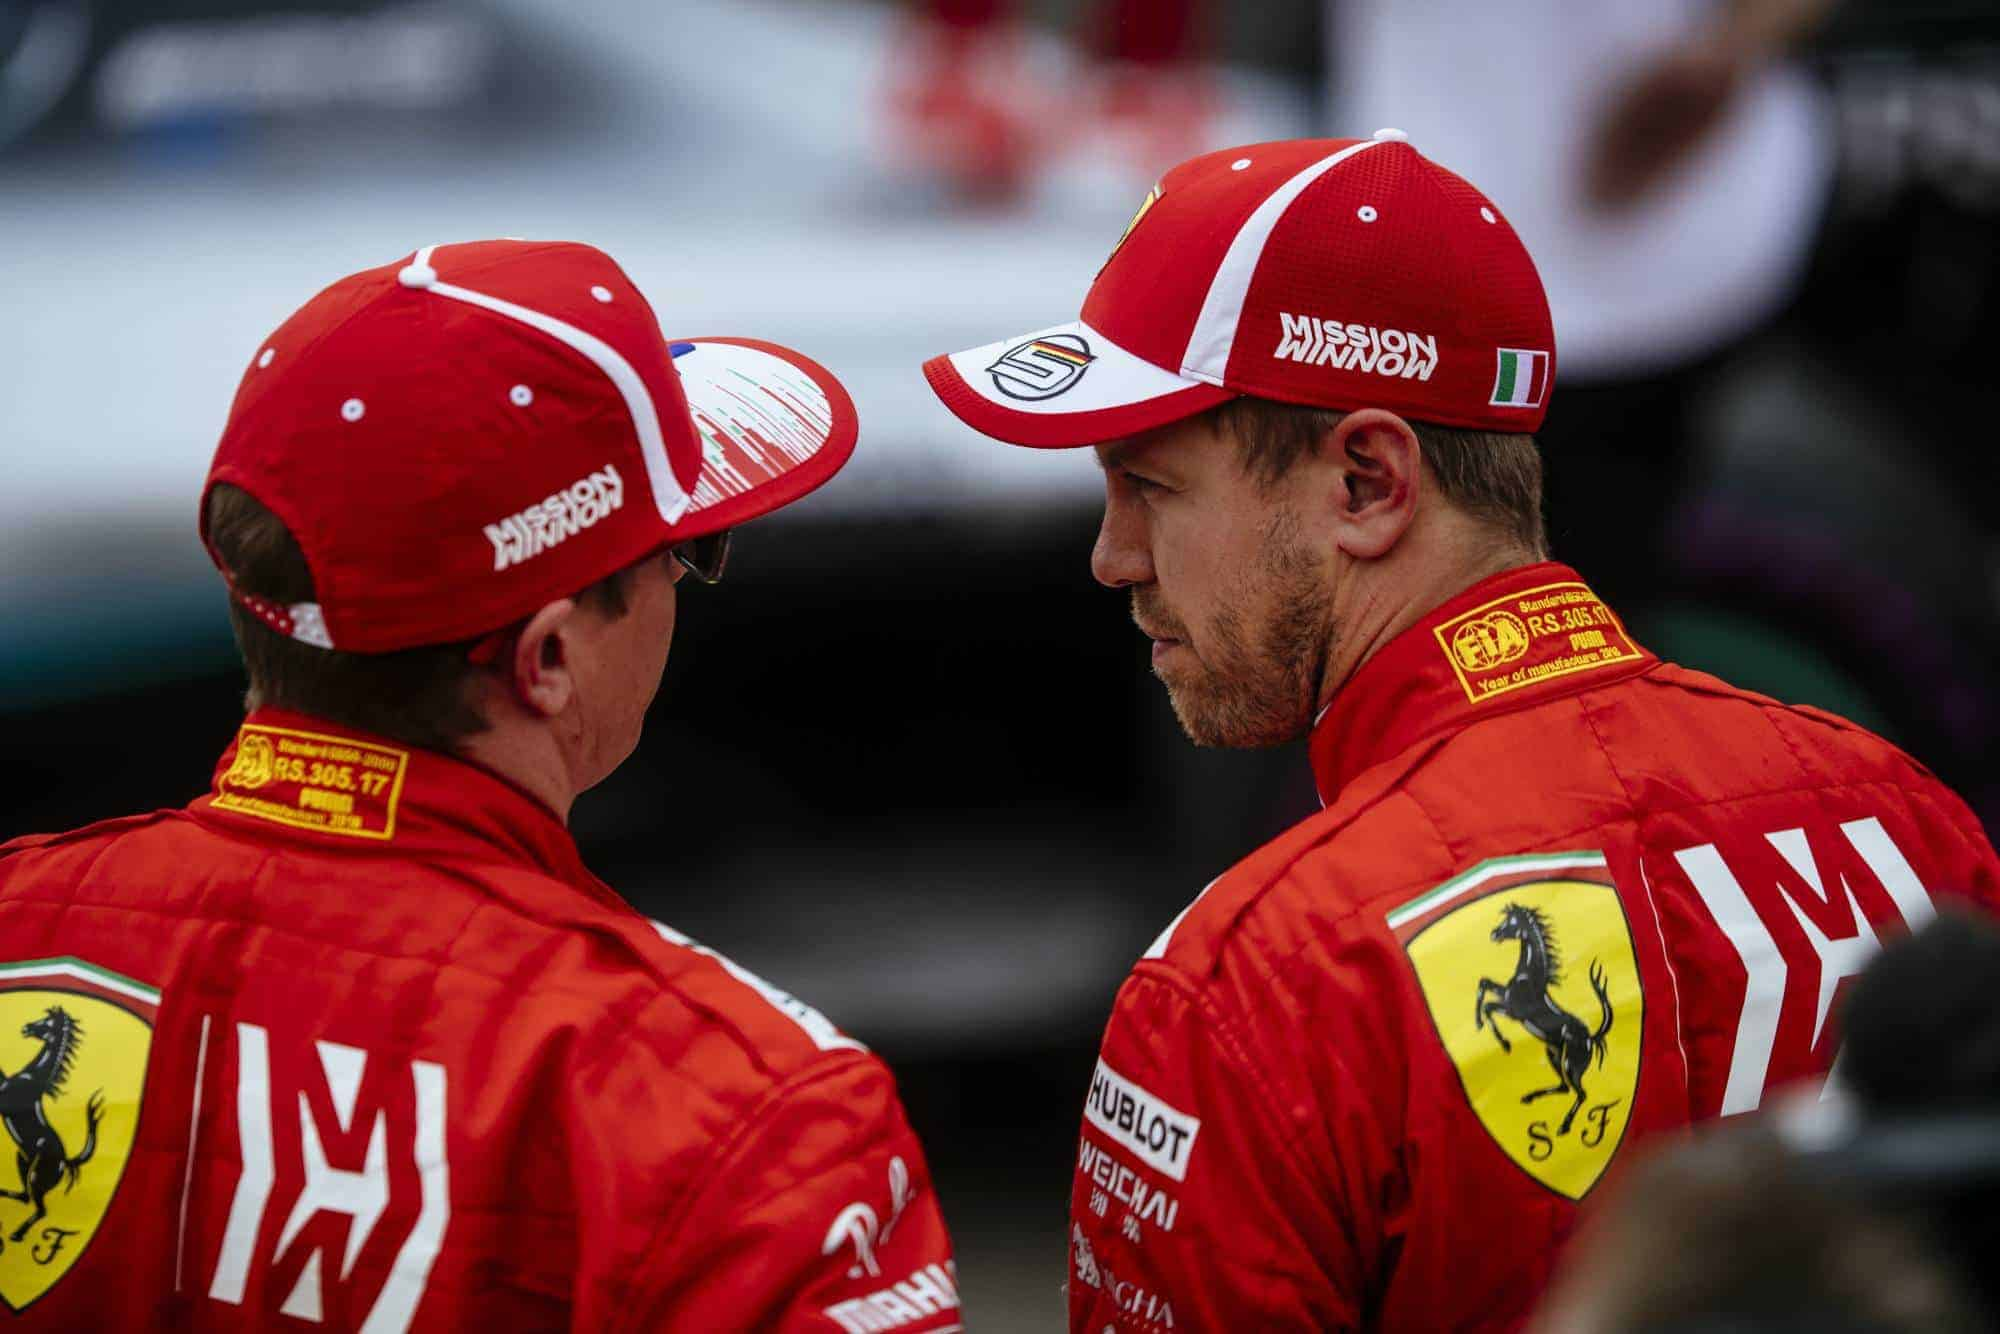 Raikkonen Vettel Ferrari USA GP F1 2018 Mission Winnow Photo Ferrari